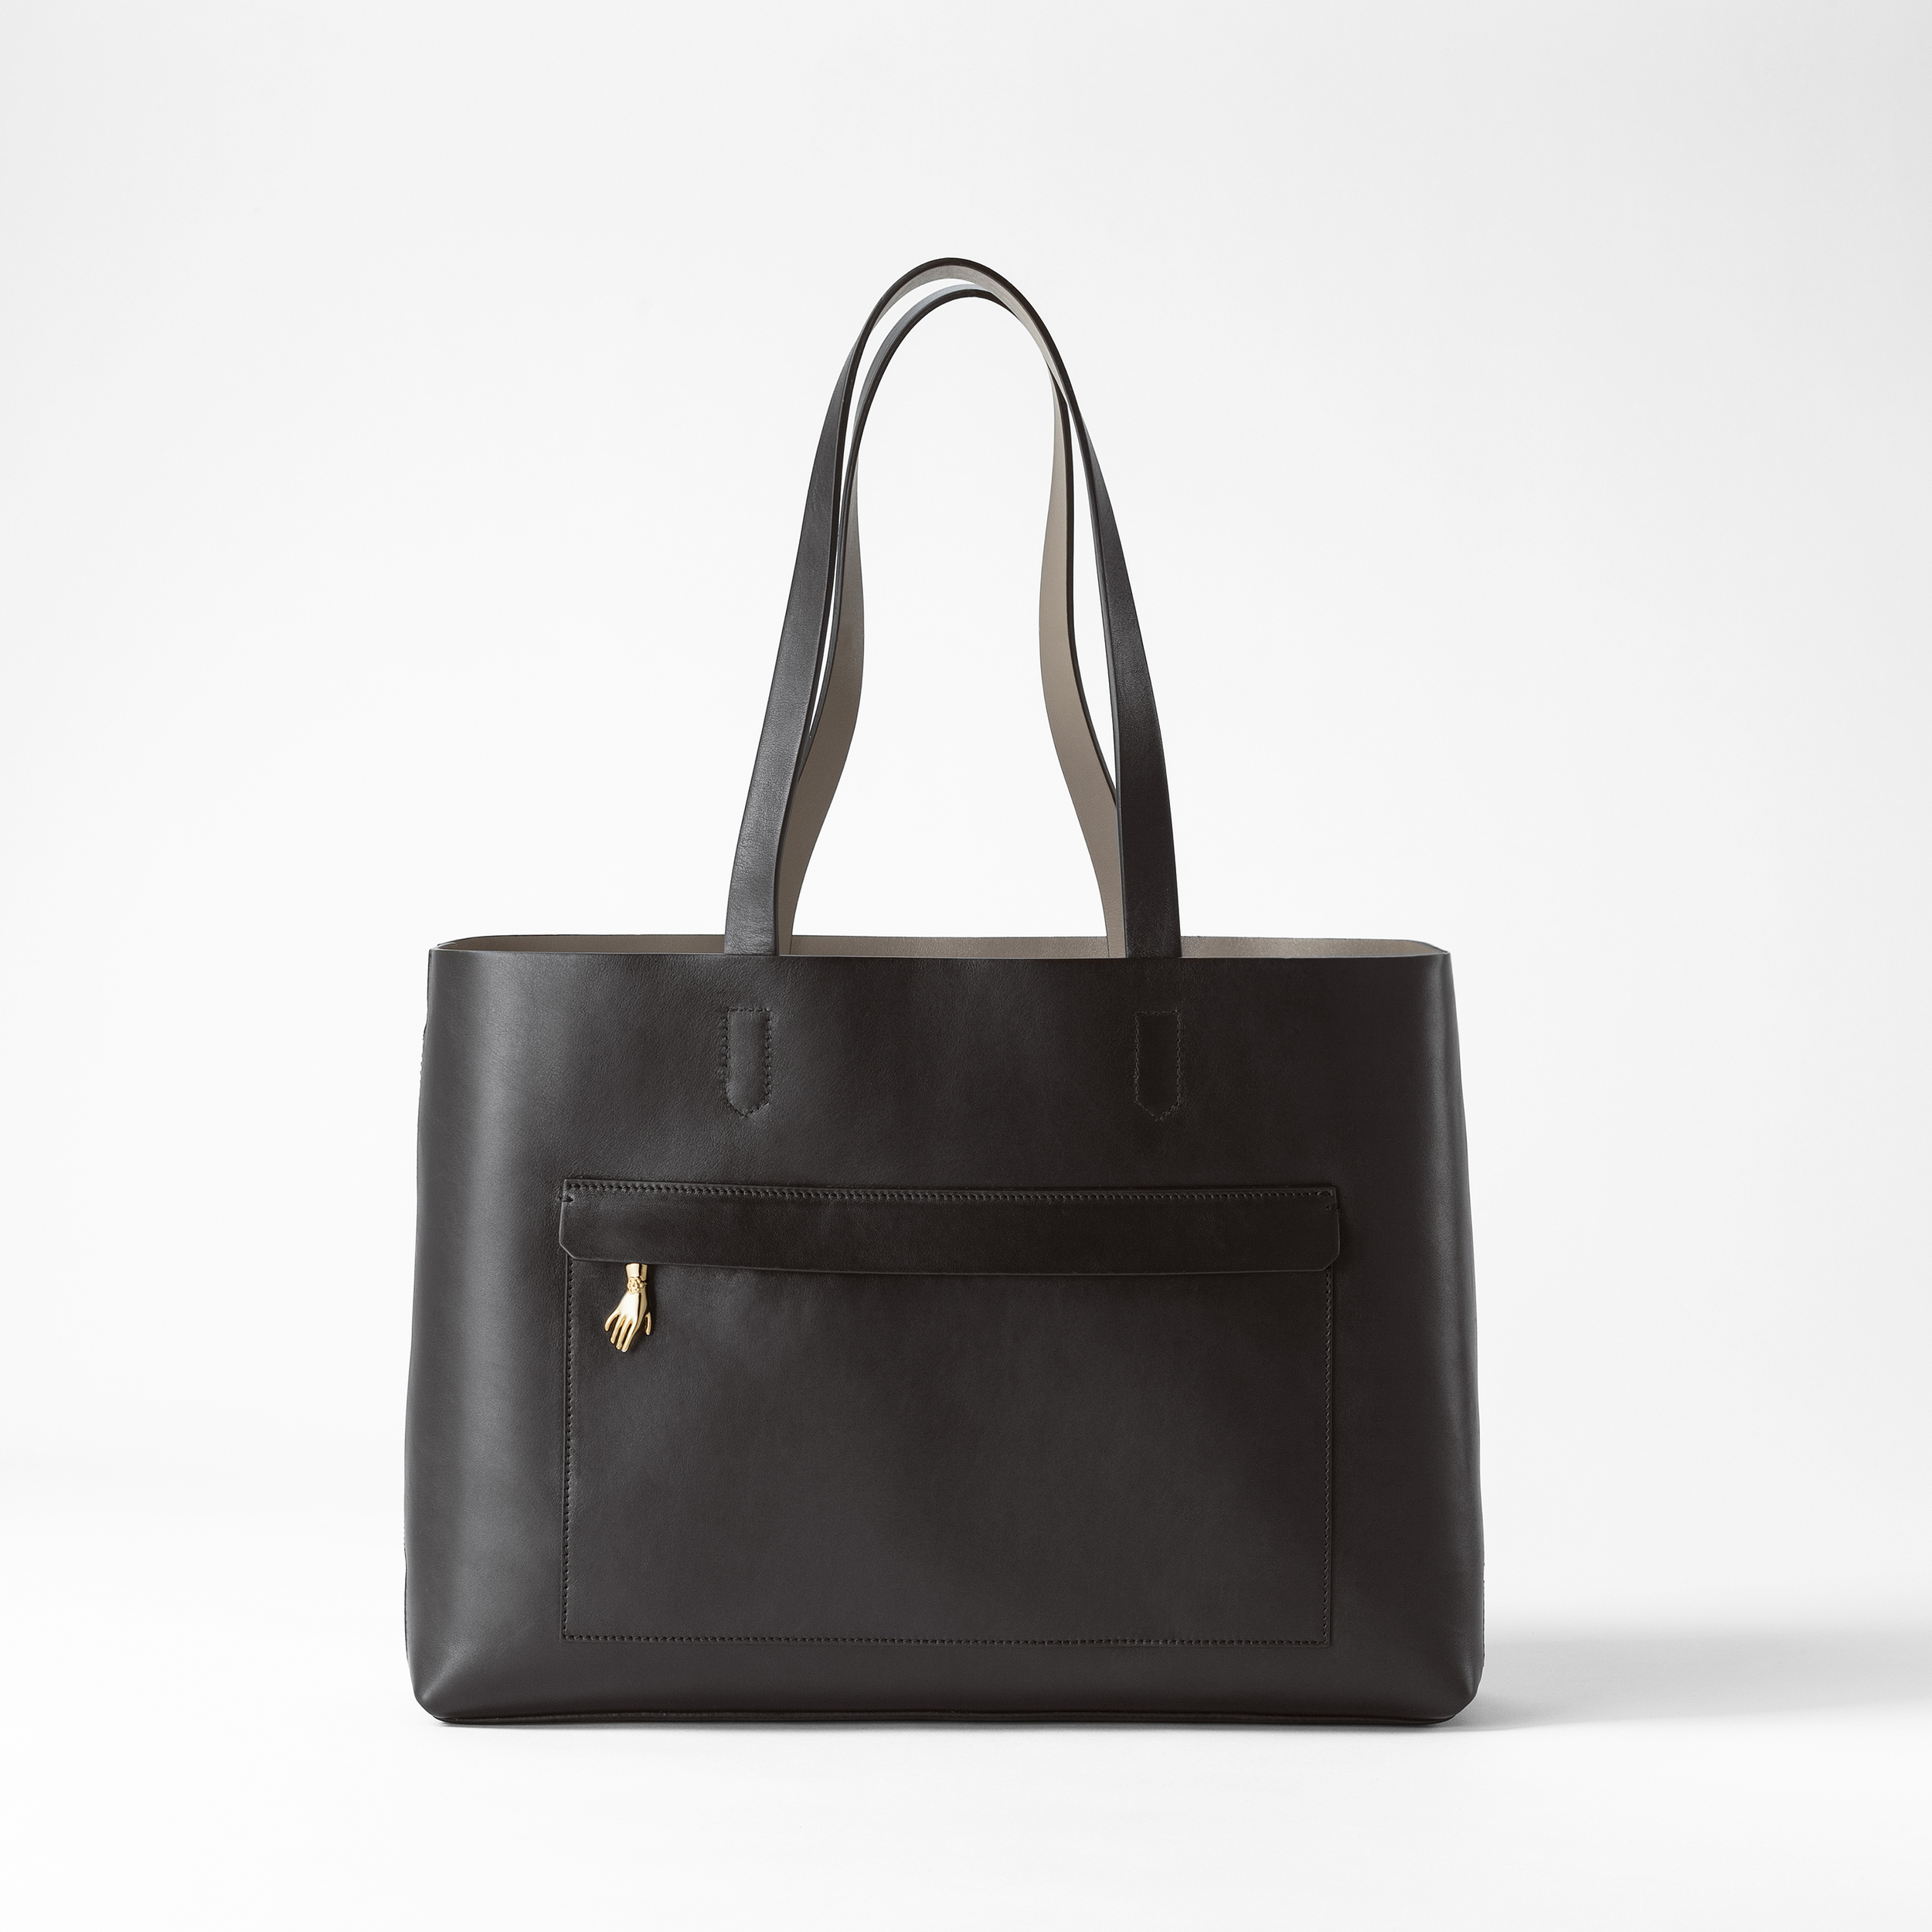 Svenskt Tenn is launching a new collection of classic leather bags with brass details inspired by Estrid Ericson.